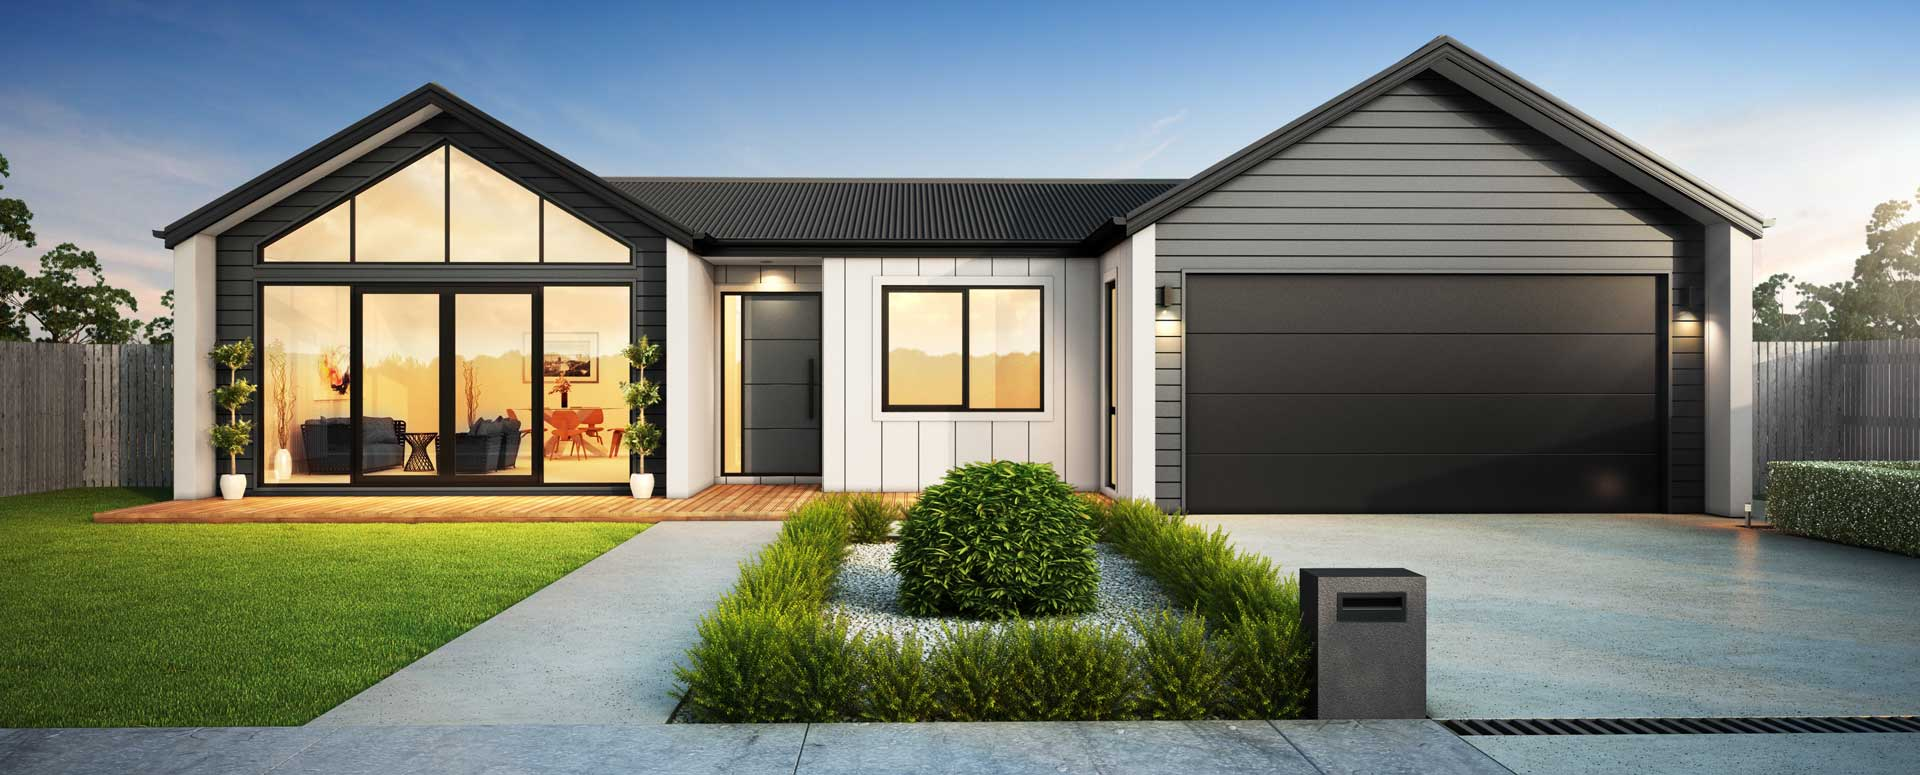 Oxford Penny Homes Banner Image